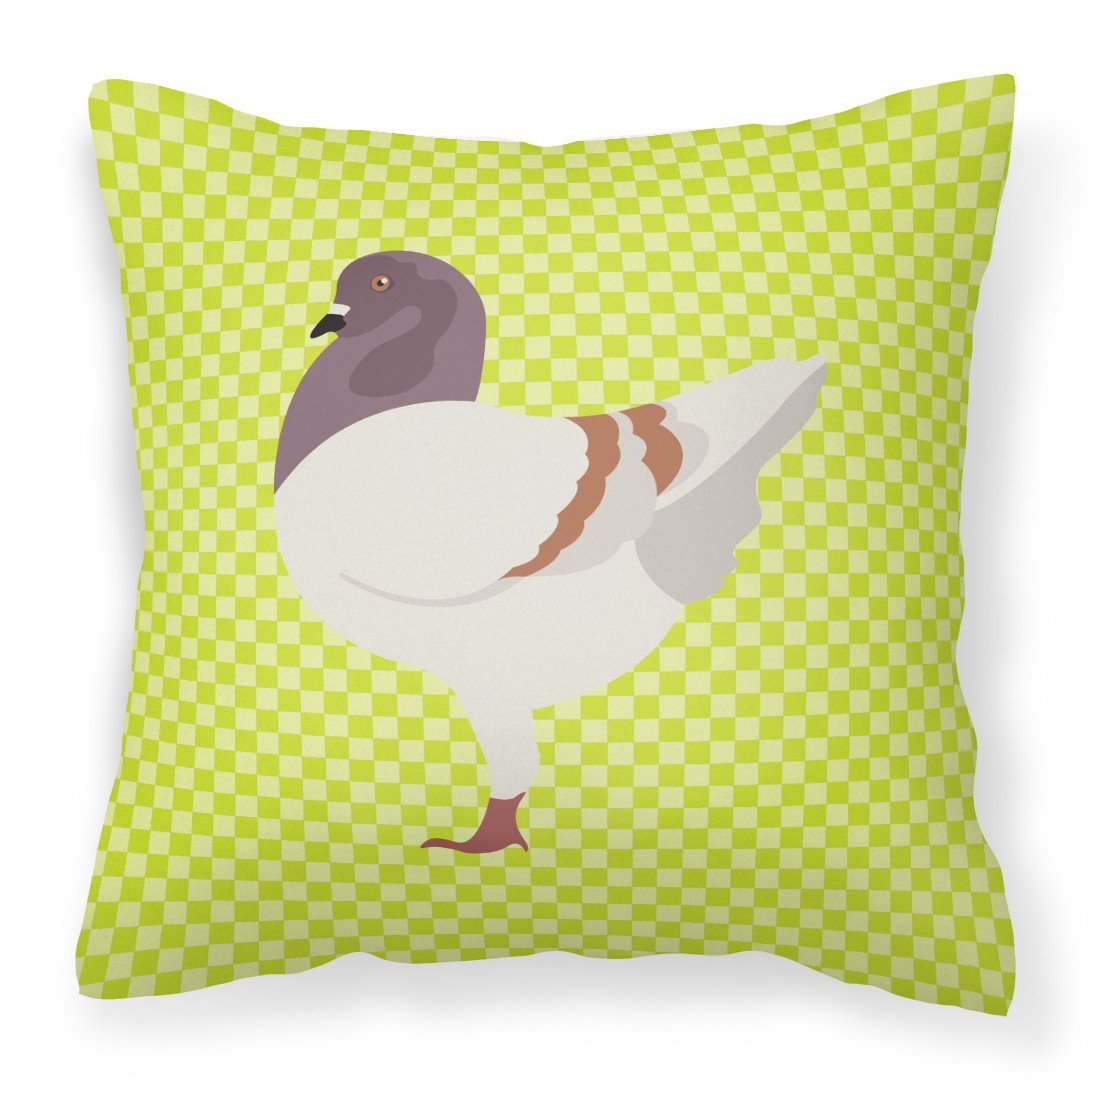 German Modena Pigeon Green Fabric Decorative Pillow BB7775PW1818 by Caroline's Treasures